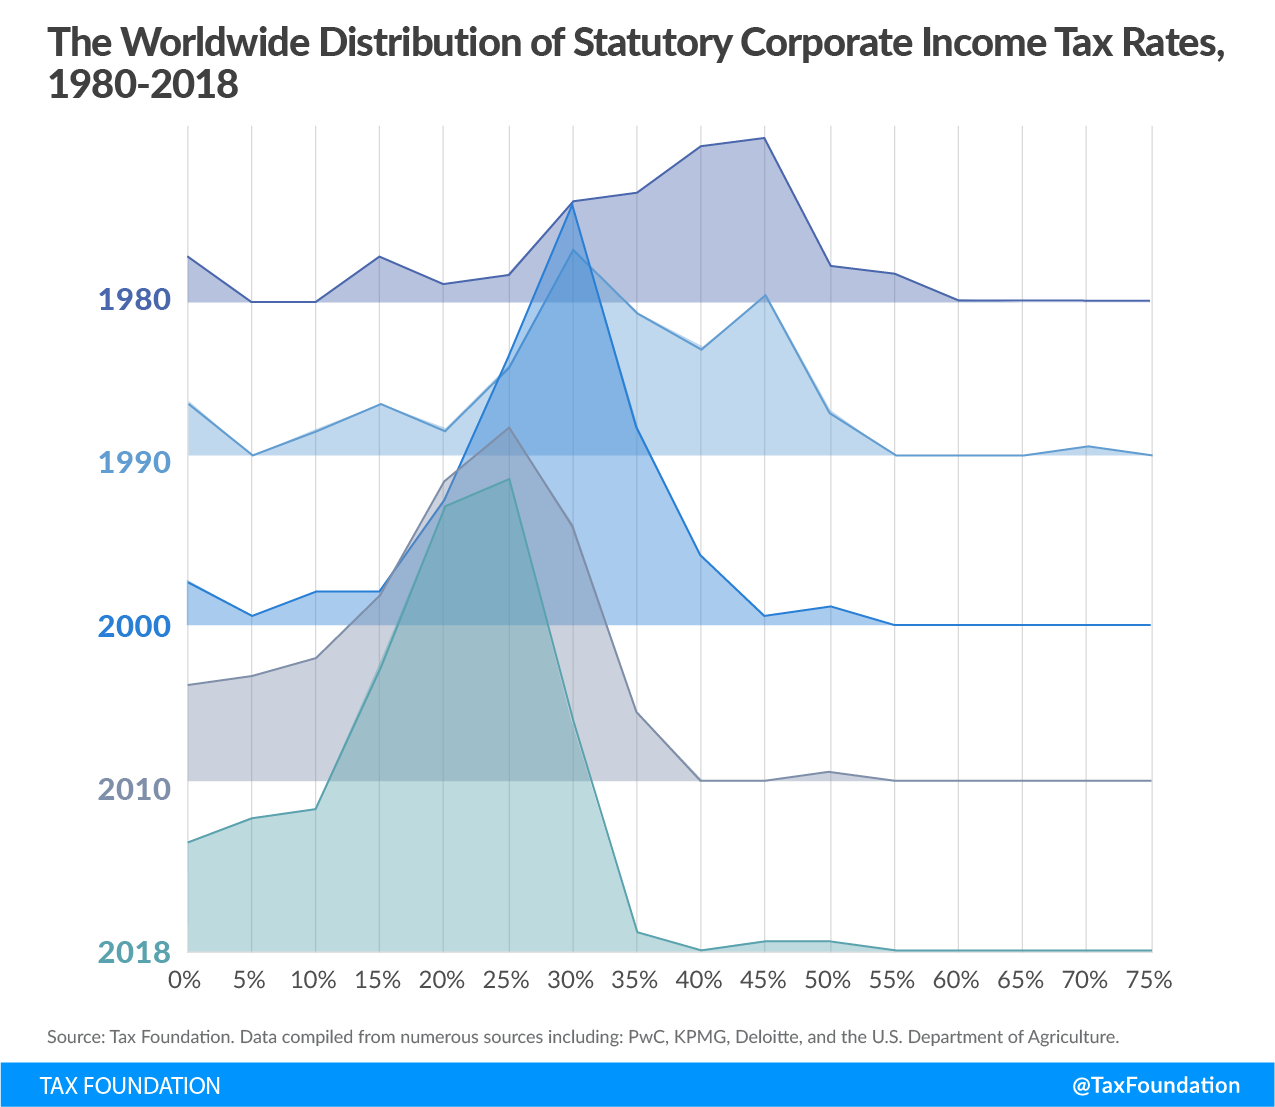 the worldwide distribution of statutory corporate income tax rates, 1980-2018